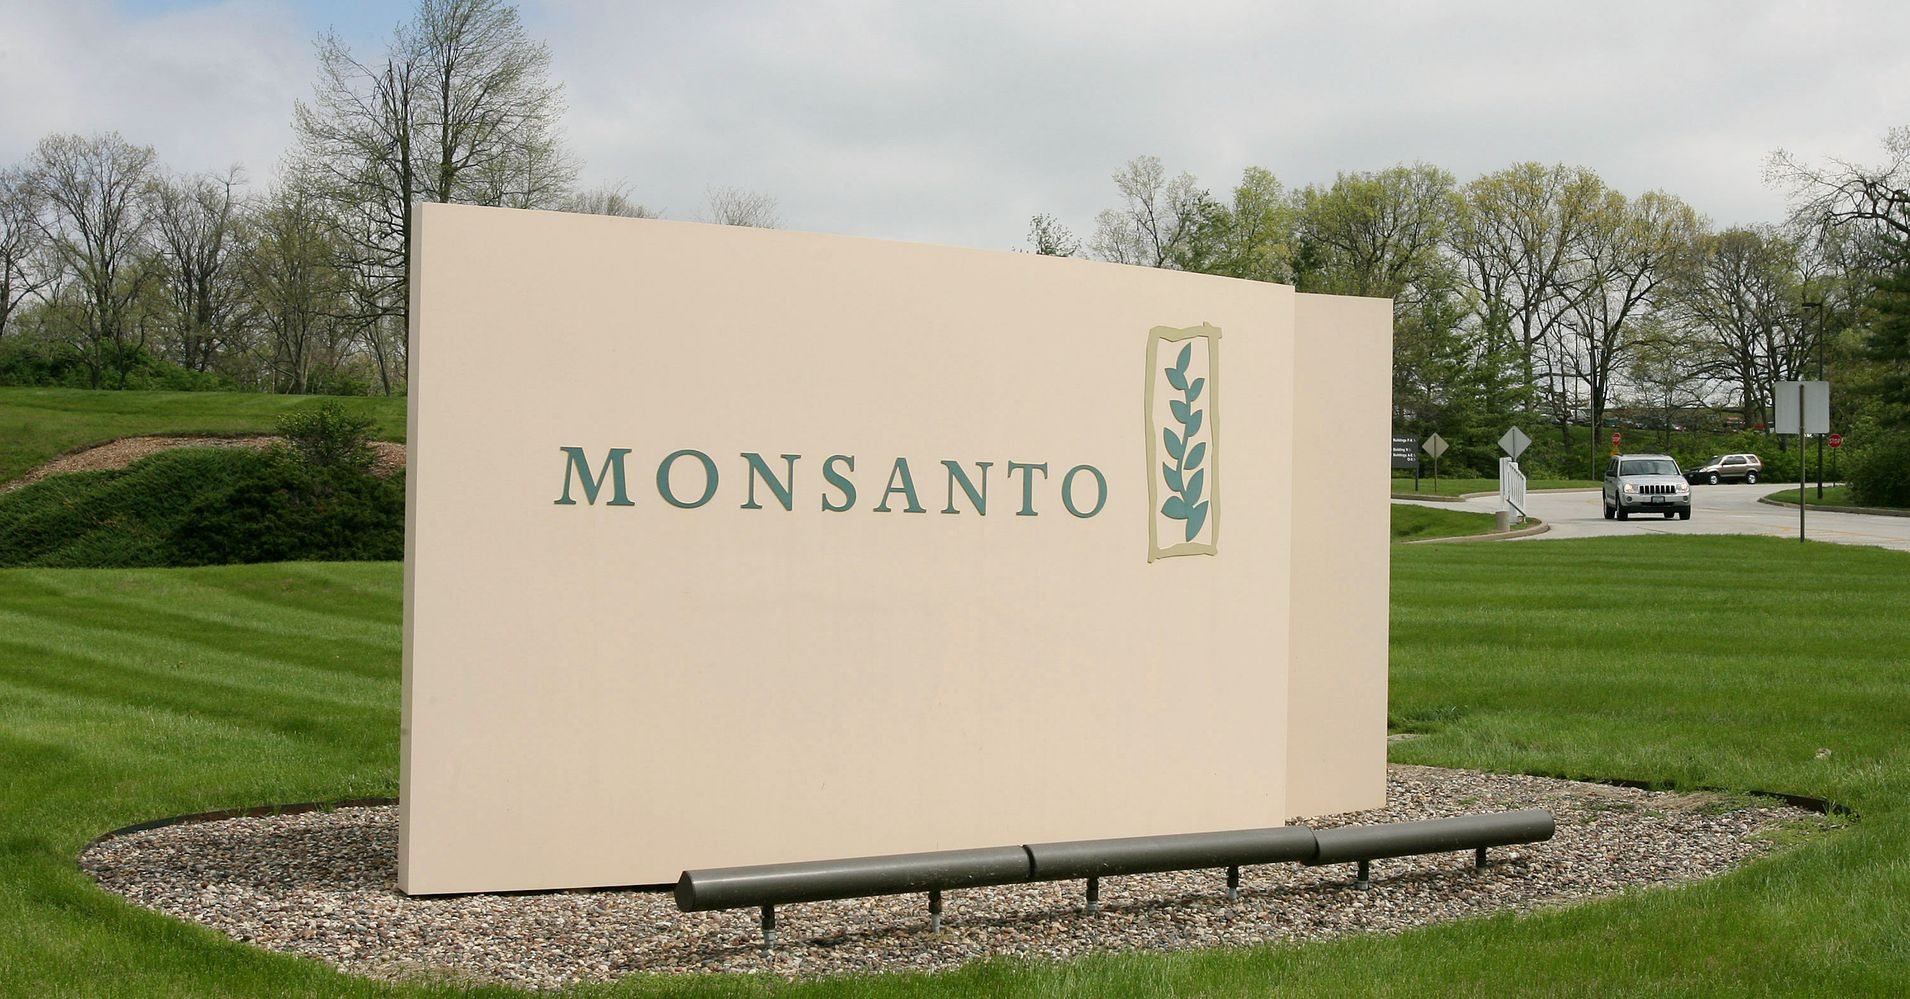 management of engineerign at monsanto Furthermore, no post harvest management and safety was ensured in these trials by monsanto-mahyco monsanto was not concerned with the findings of the trials at all they just wanted gm seeds to be introduced into indian soil and they did so without due process.